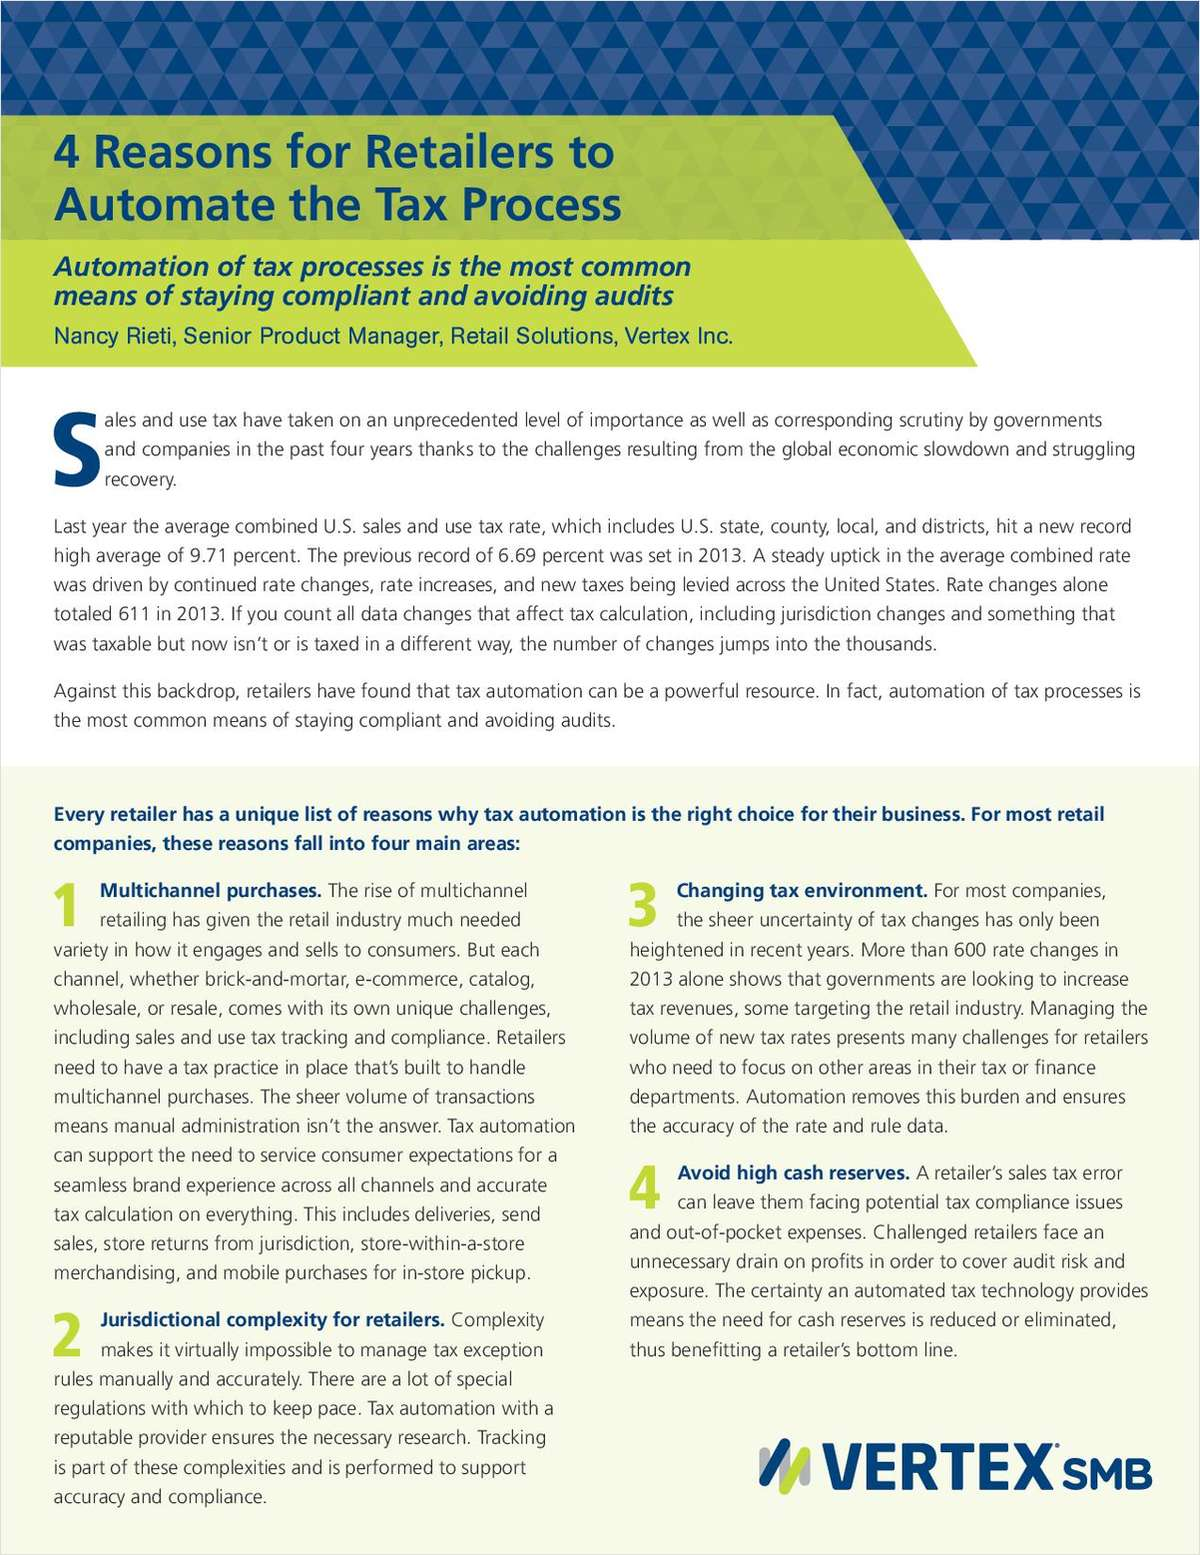 4 Reasons for Retailers to Automate the Tax Process